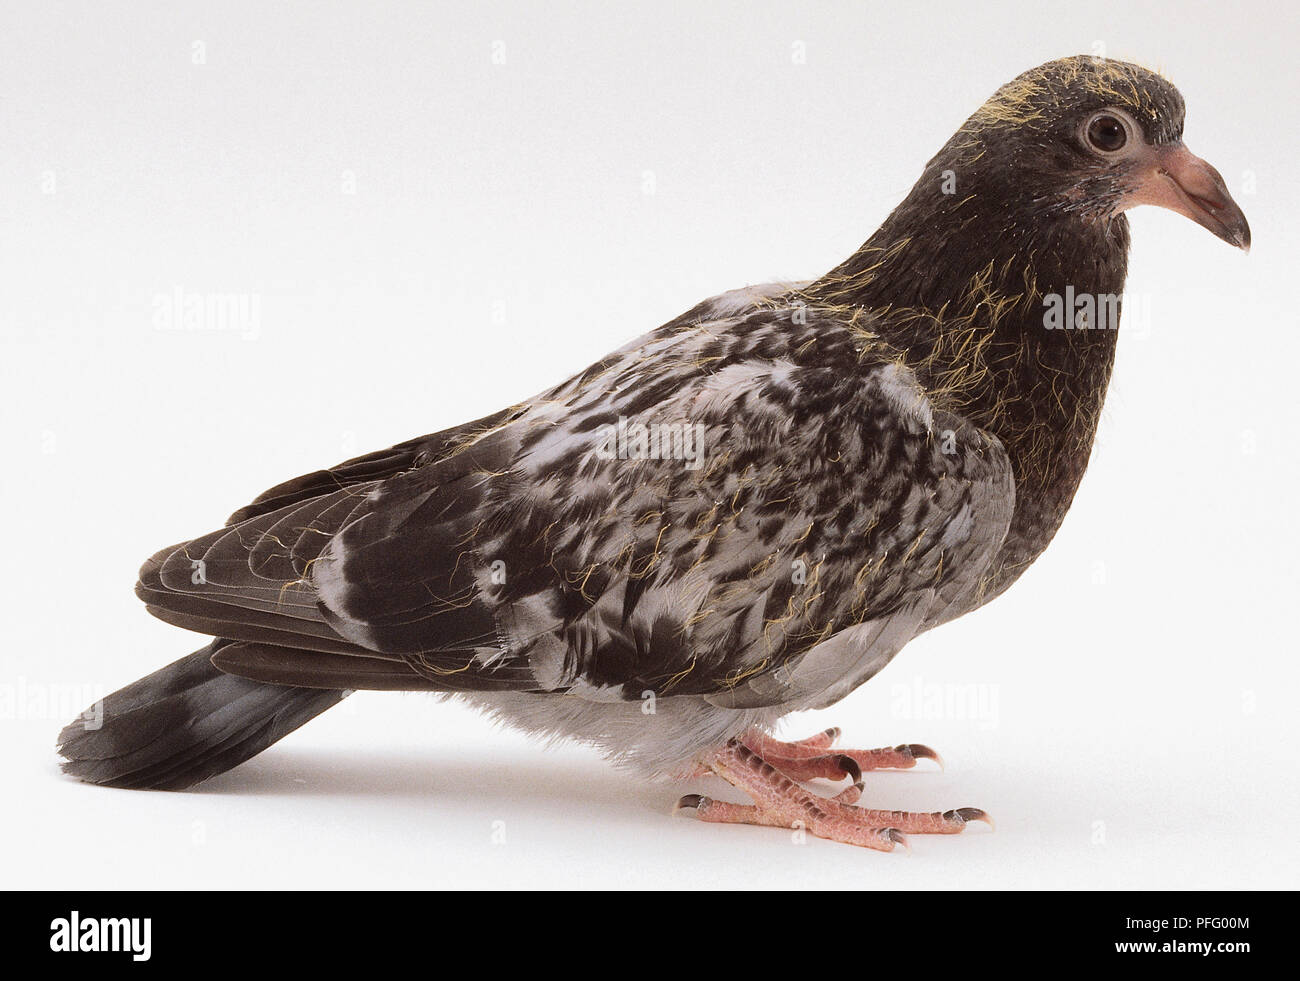 Two week old street pigeon, with relatively little yellow plumage remaining. - Stock Image